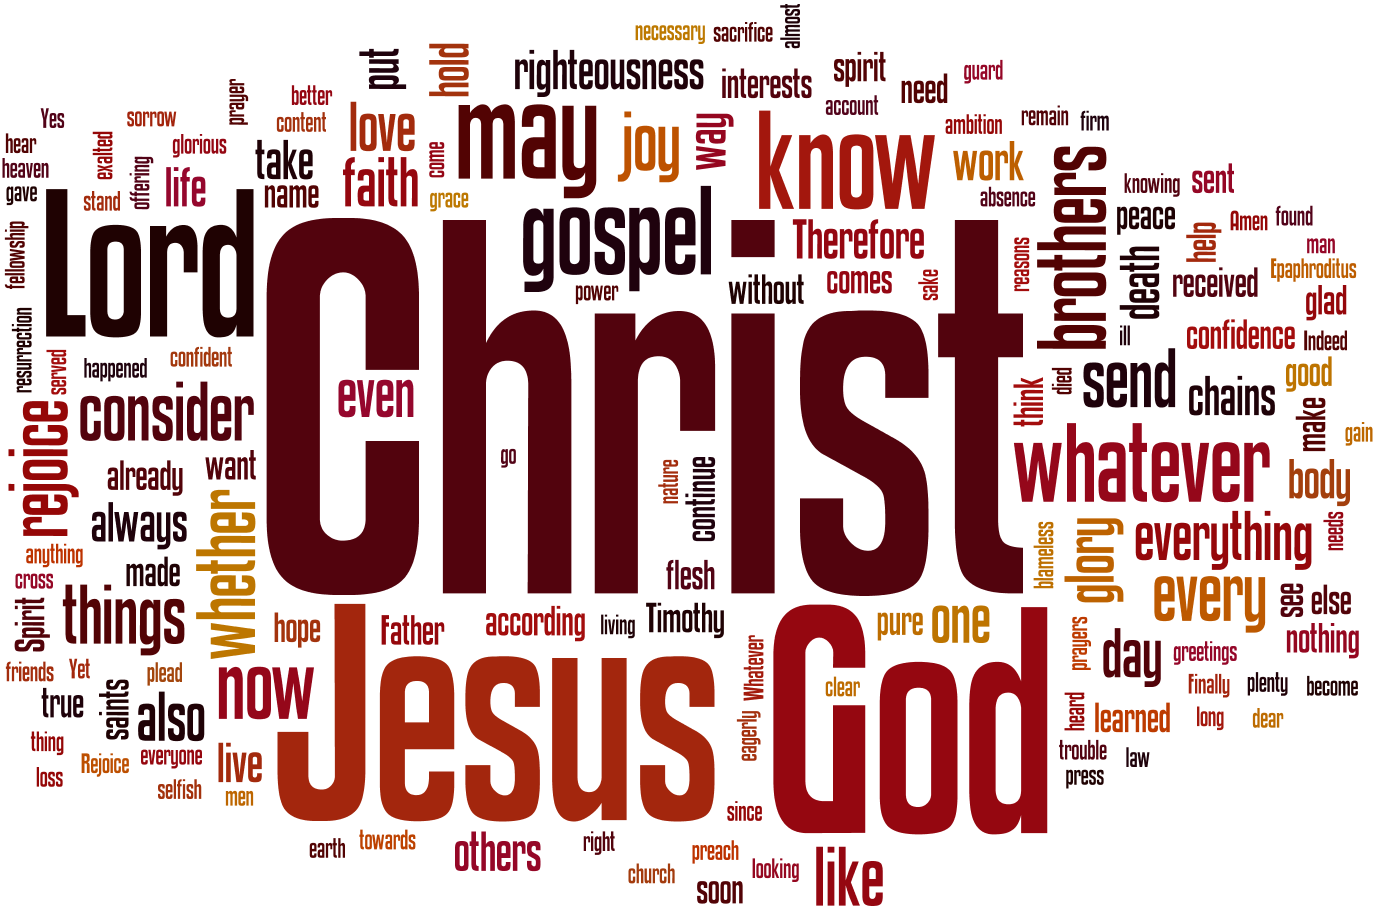 christ essay jesus other power tactic Christ essay jesus other power tactic power tactics of jesus christ by jay haley an   power tactic of jesus christ and other essay, jewish homework help, creative.